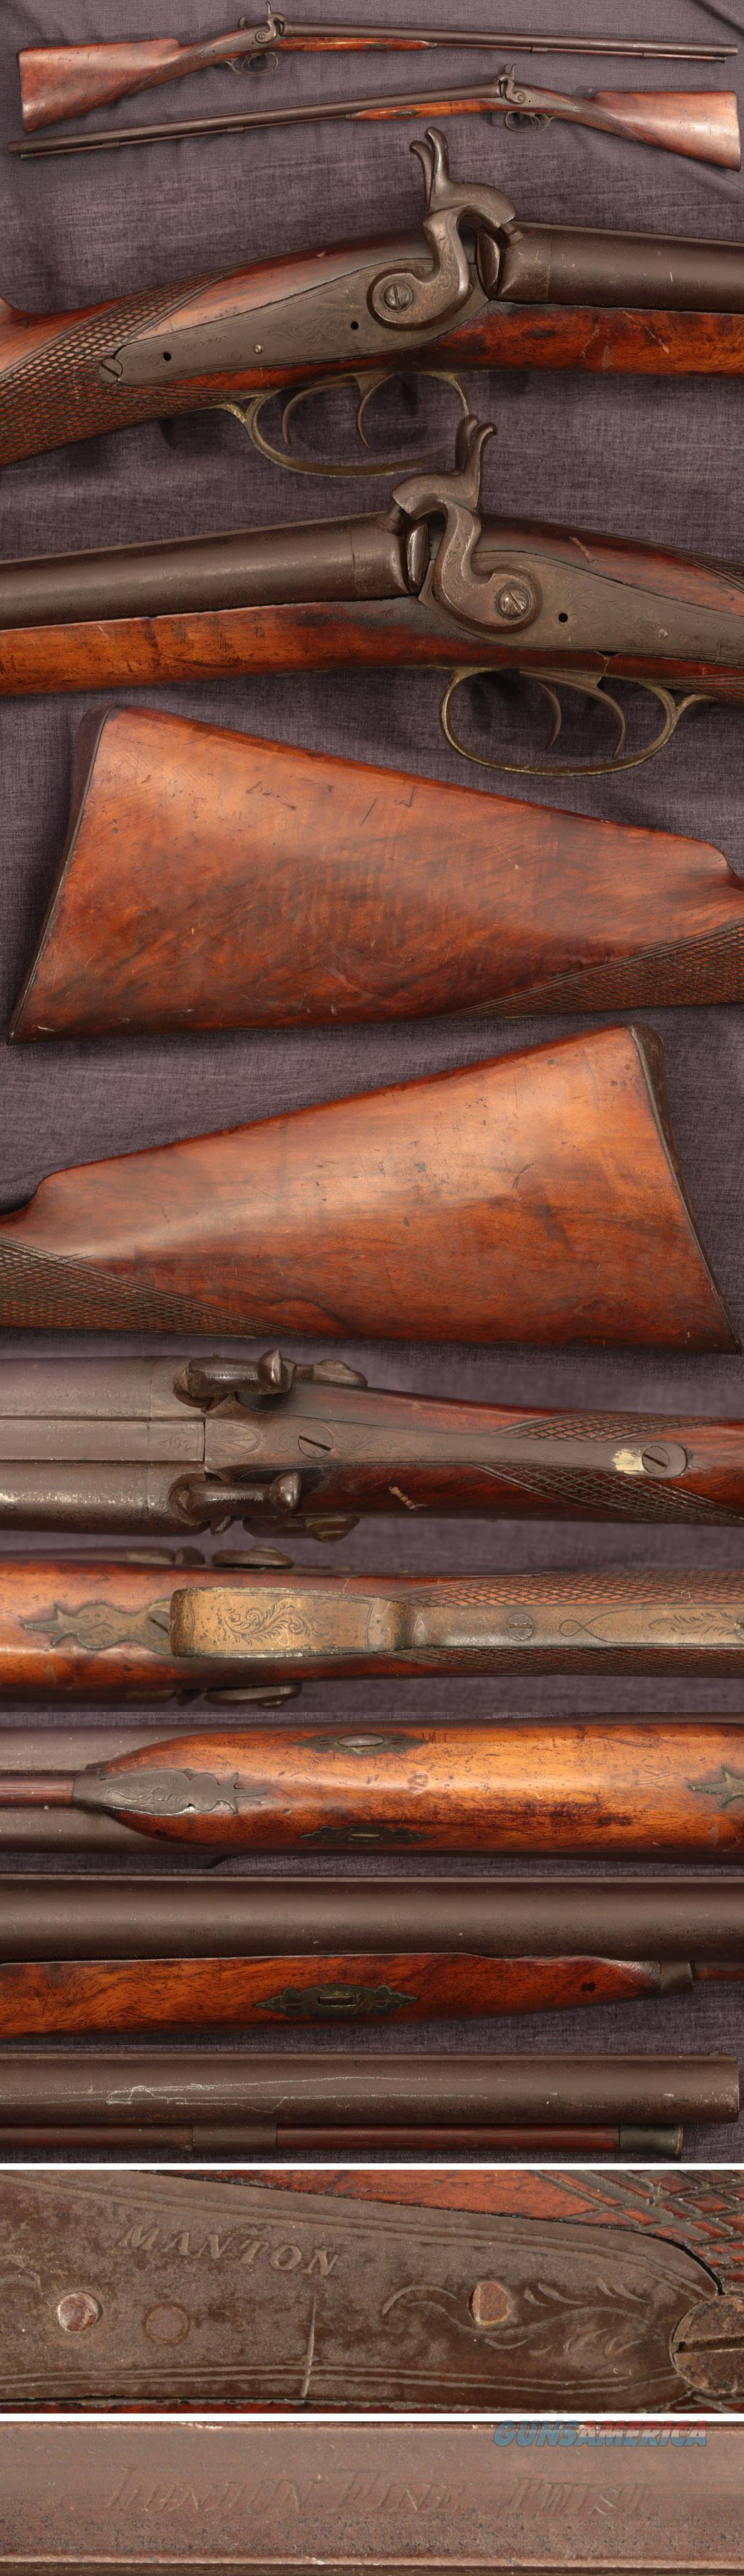 Manton double barrel percussion shotgun  Guns > Shotguns > Muzzleloading Pre-1899 Shotguns